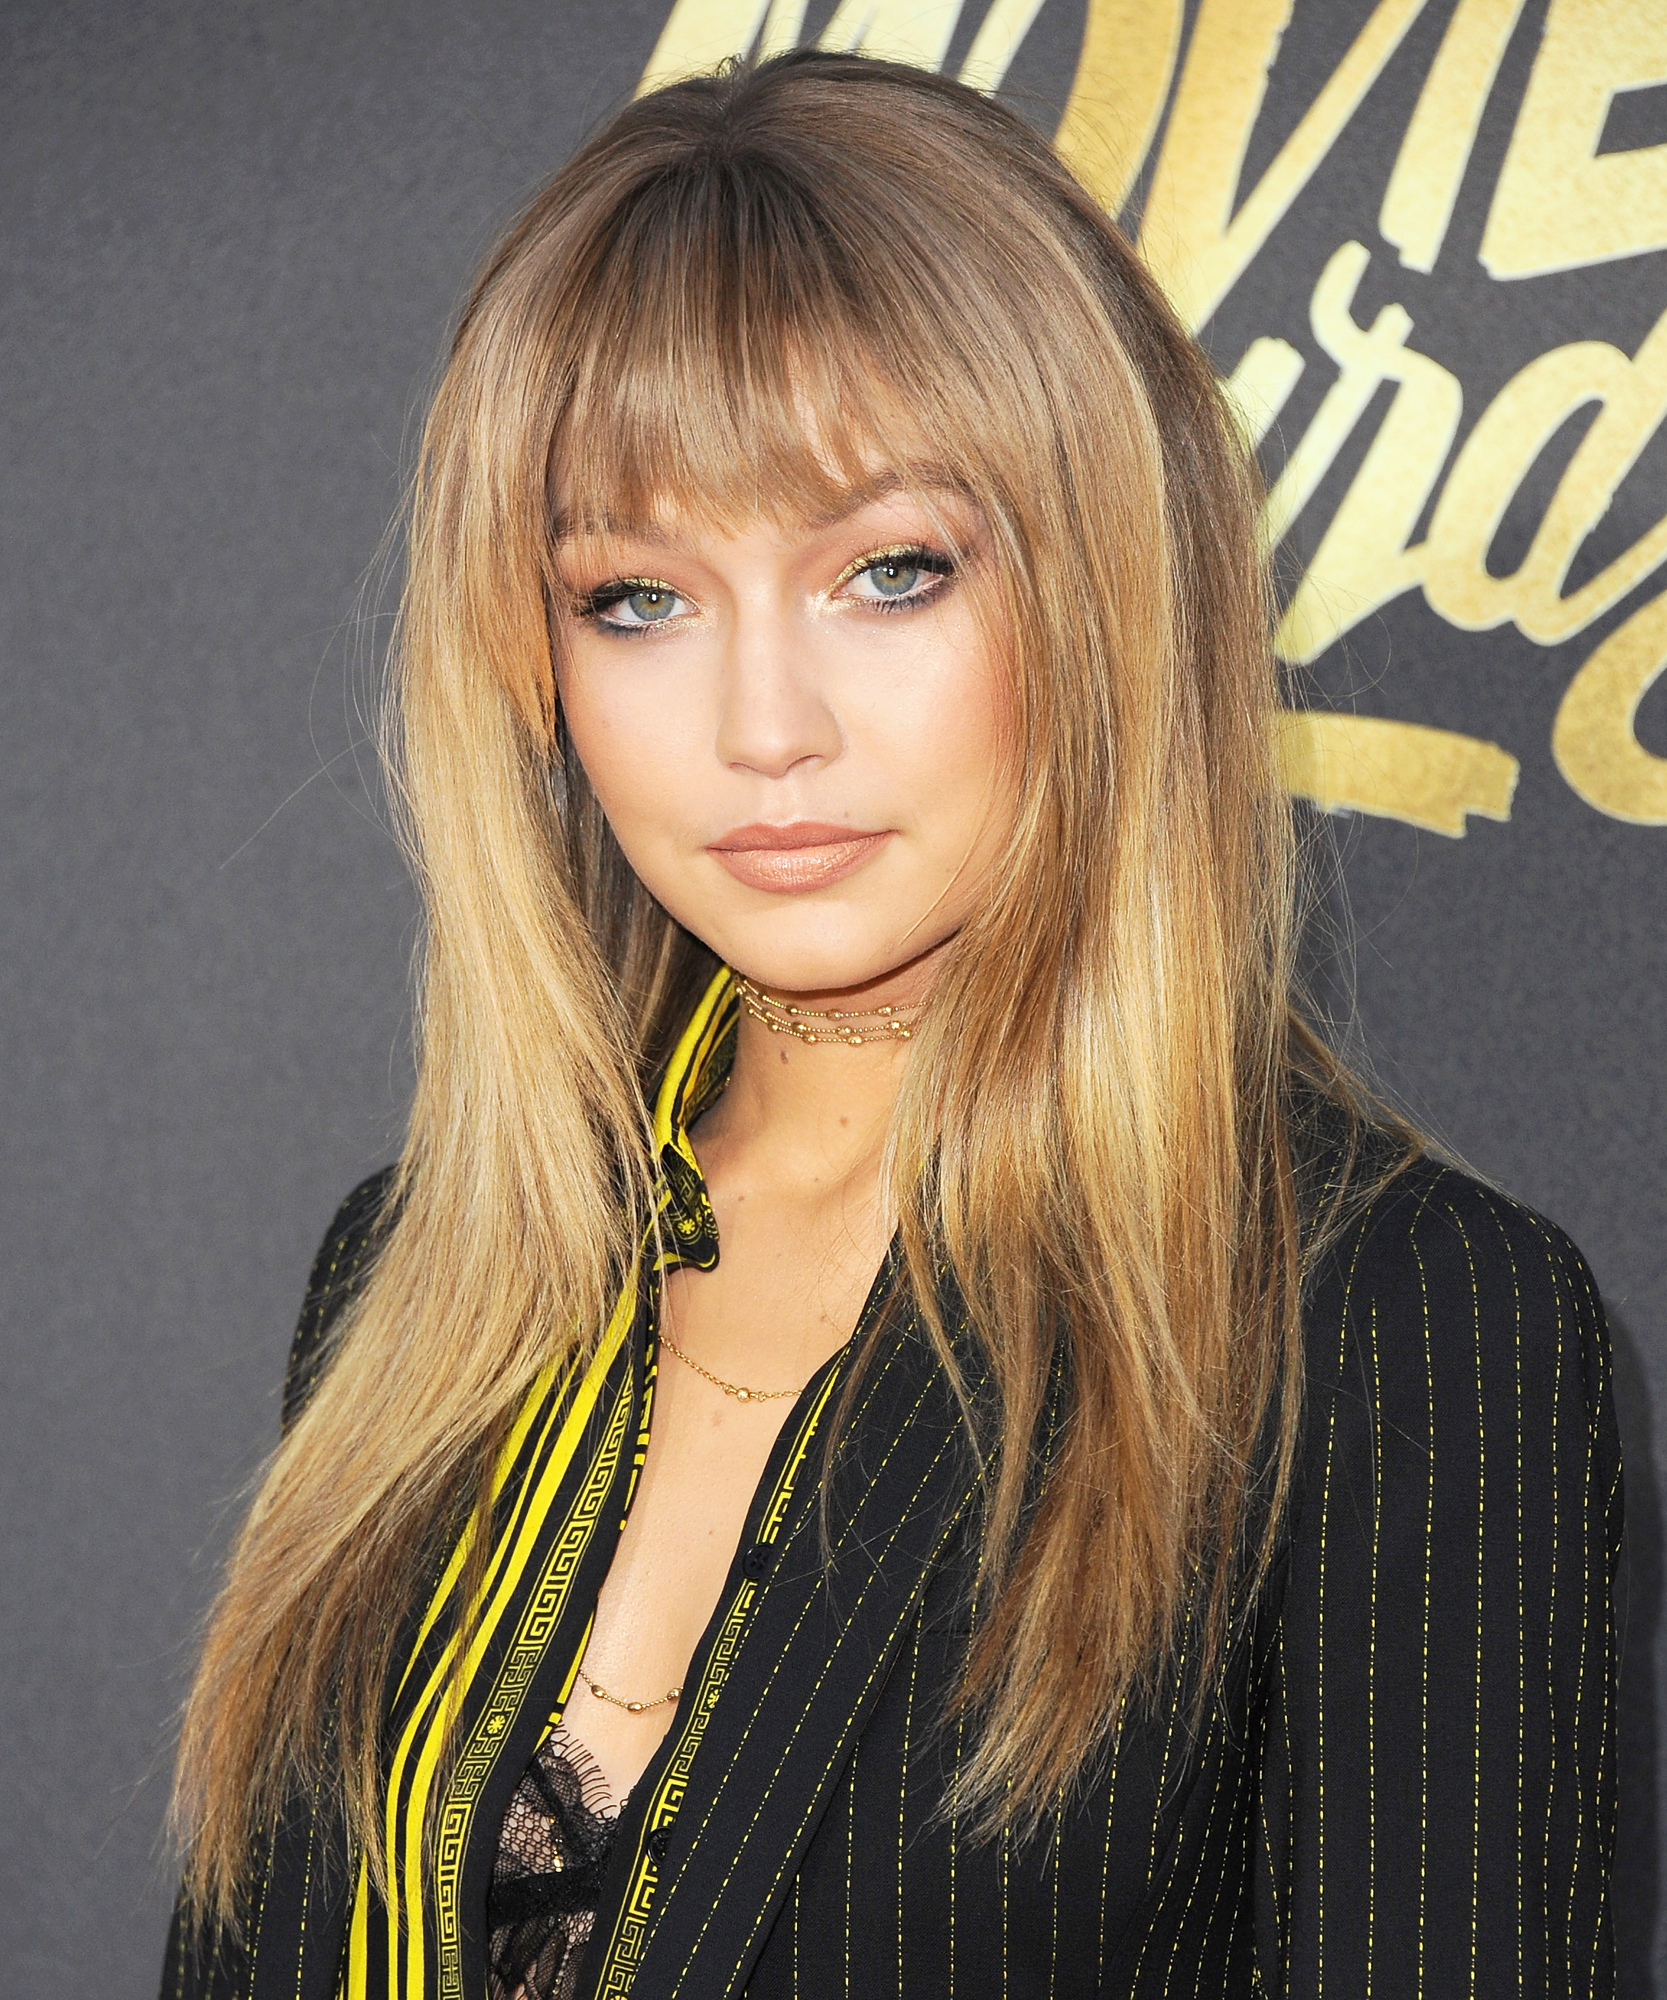 In Love with Gigi Hadid's New Bangs? Here's How to Get the Sleek Look at Home